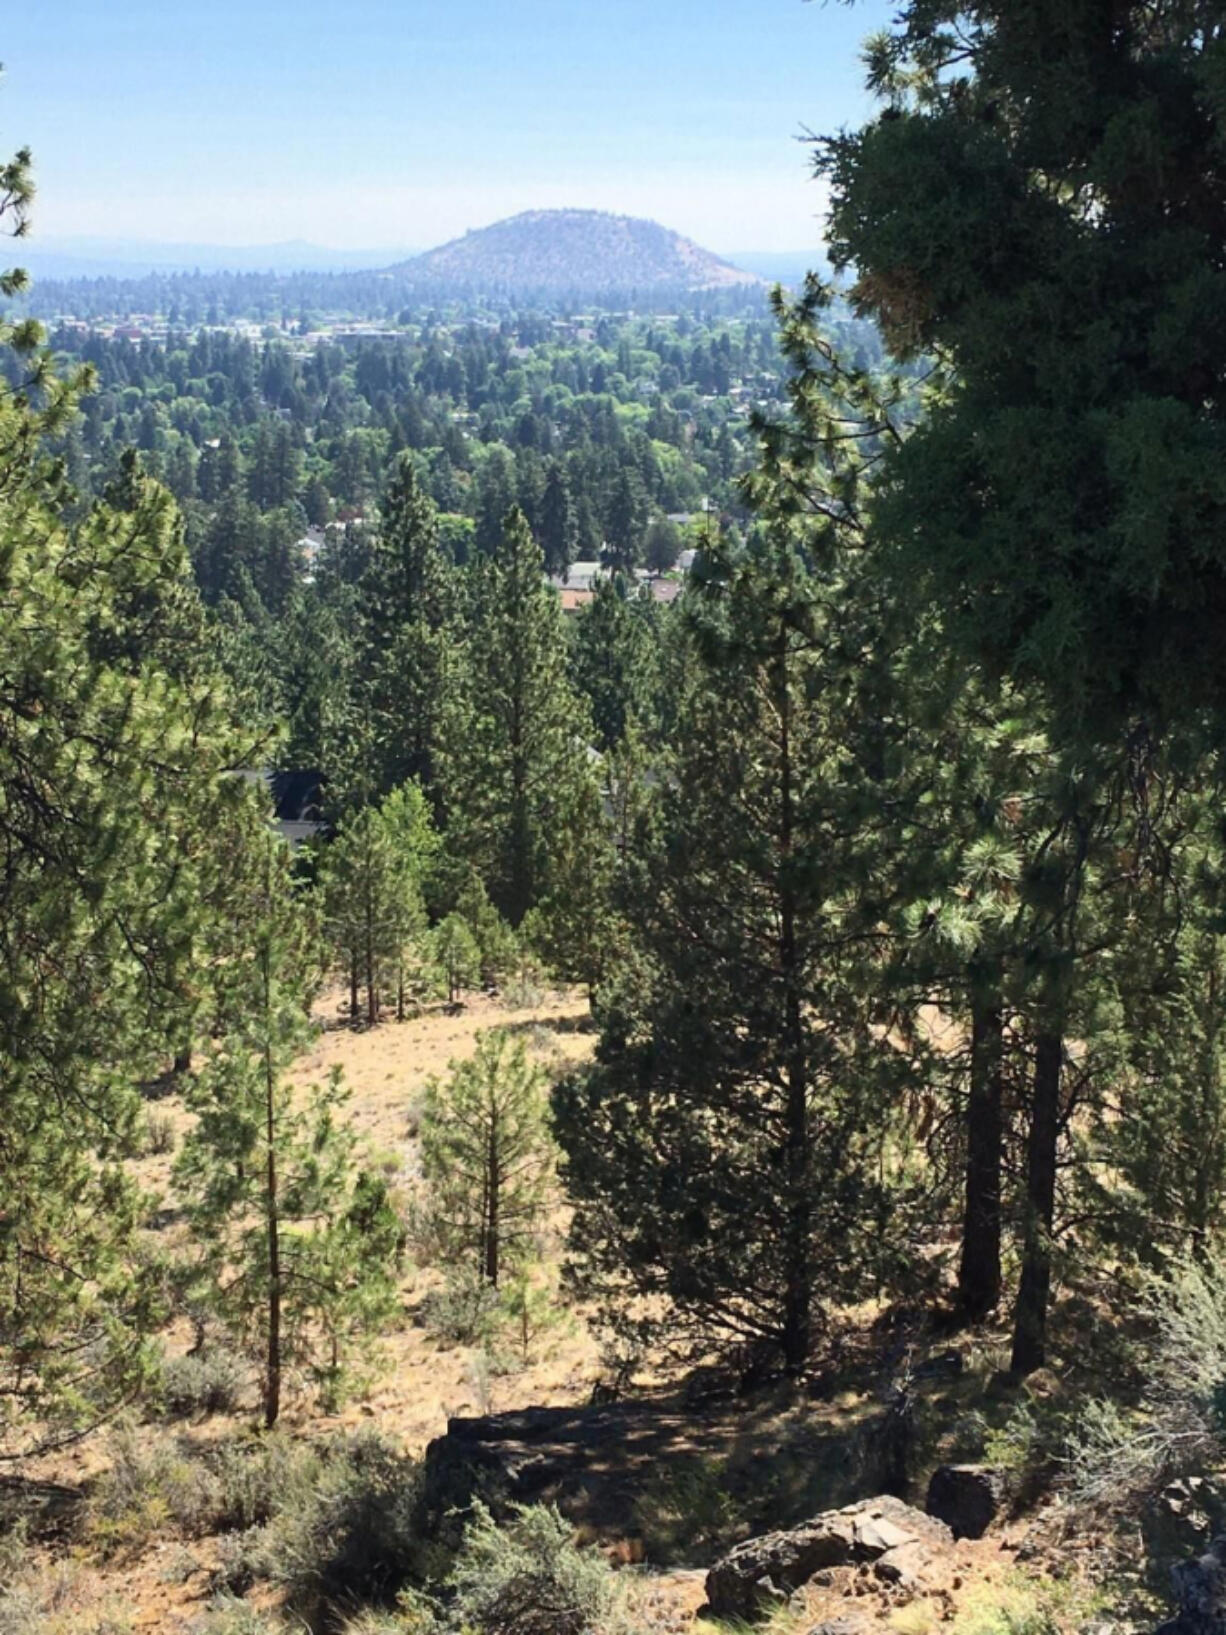 Pilot Butte as seen from the top of Overturf Butte, located on Bend's west side.